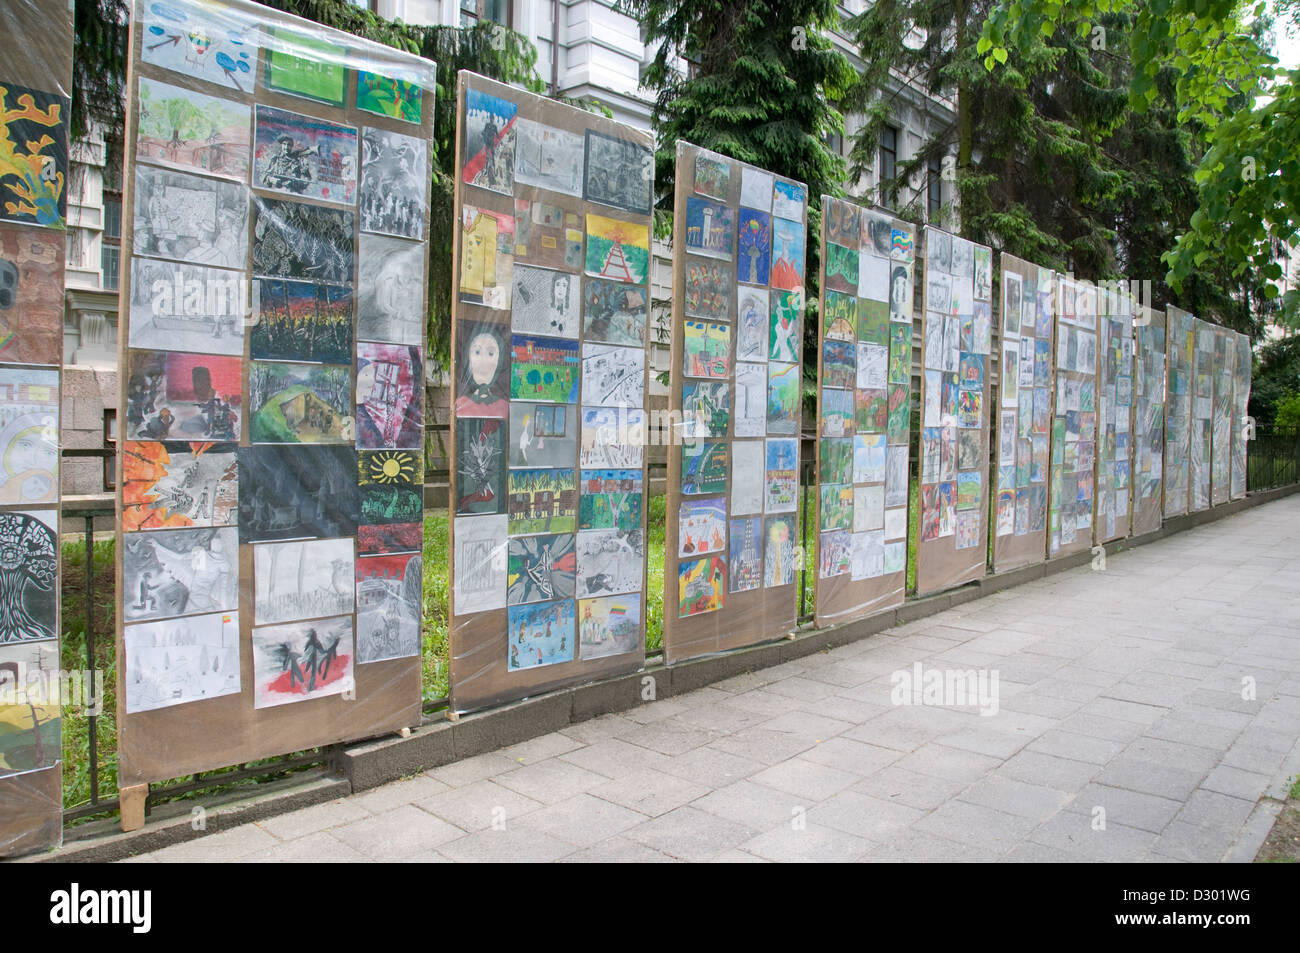 Art exhibition at the Museaum of Genocide Victims which was the Nazi and KGB H.Q in Gedimino Avenue, Vilnius, Lithuania - Stock Image